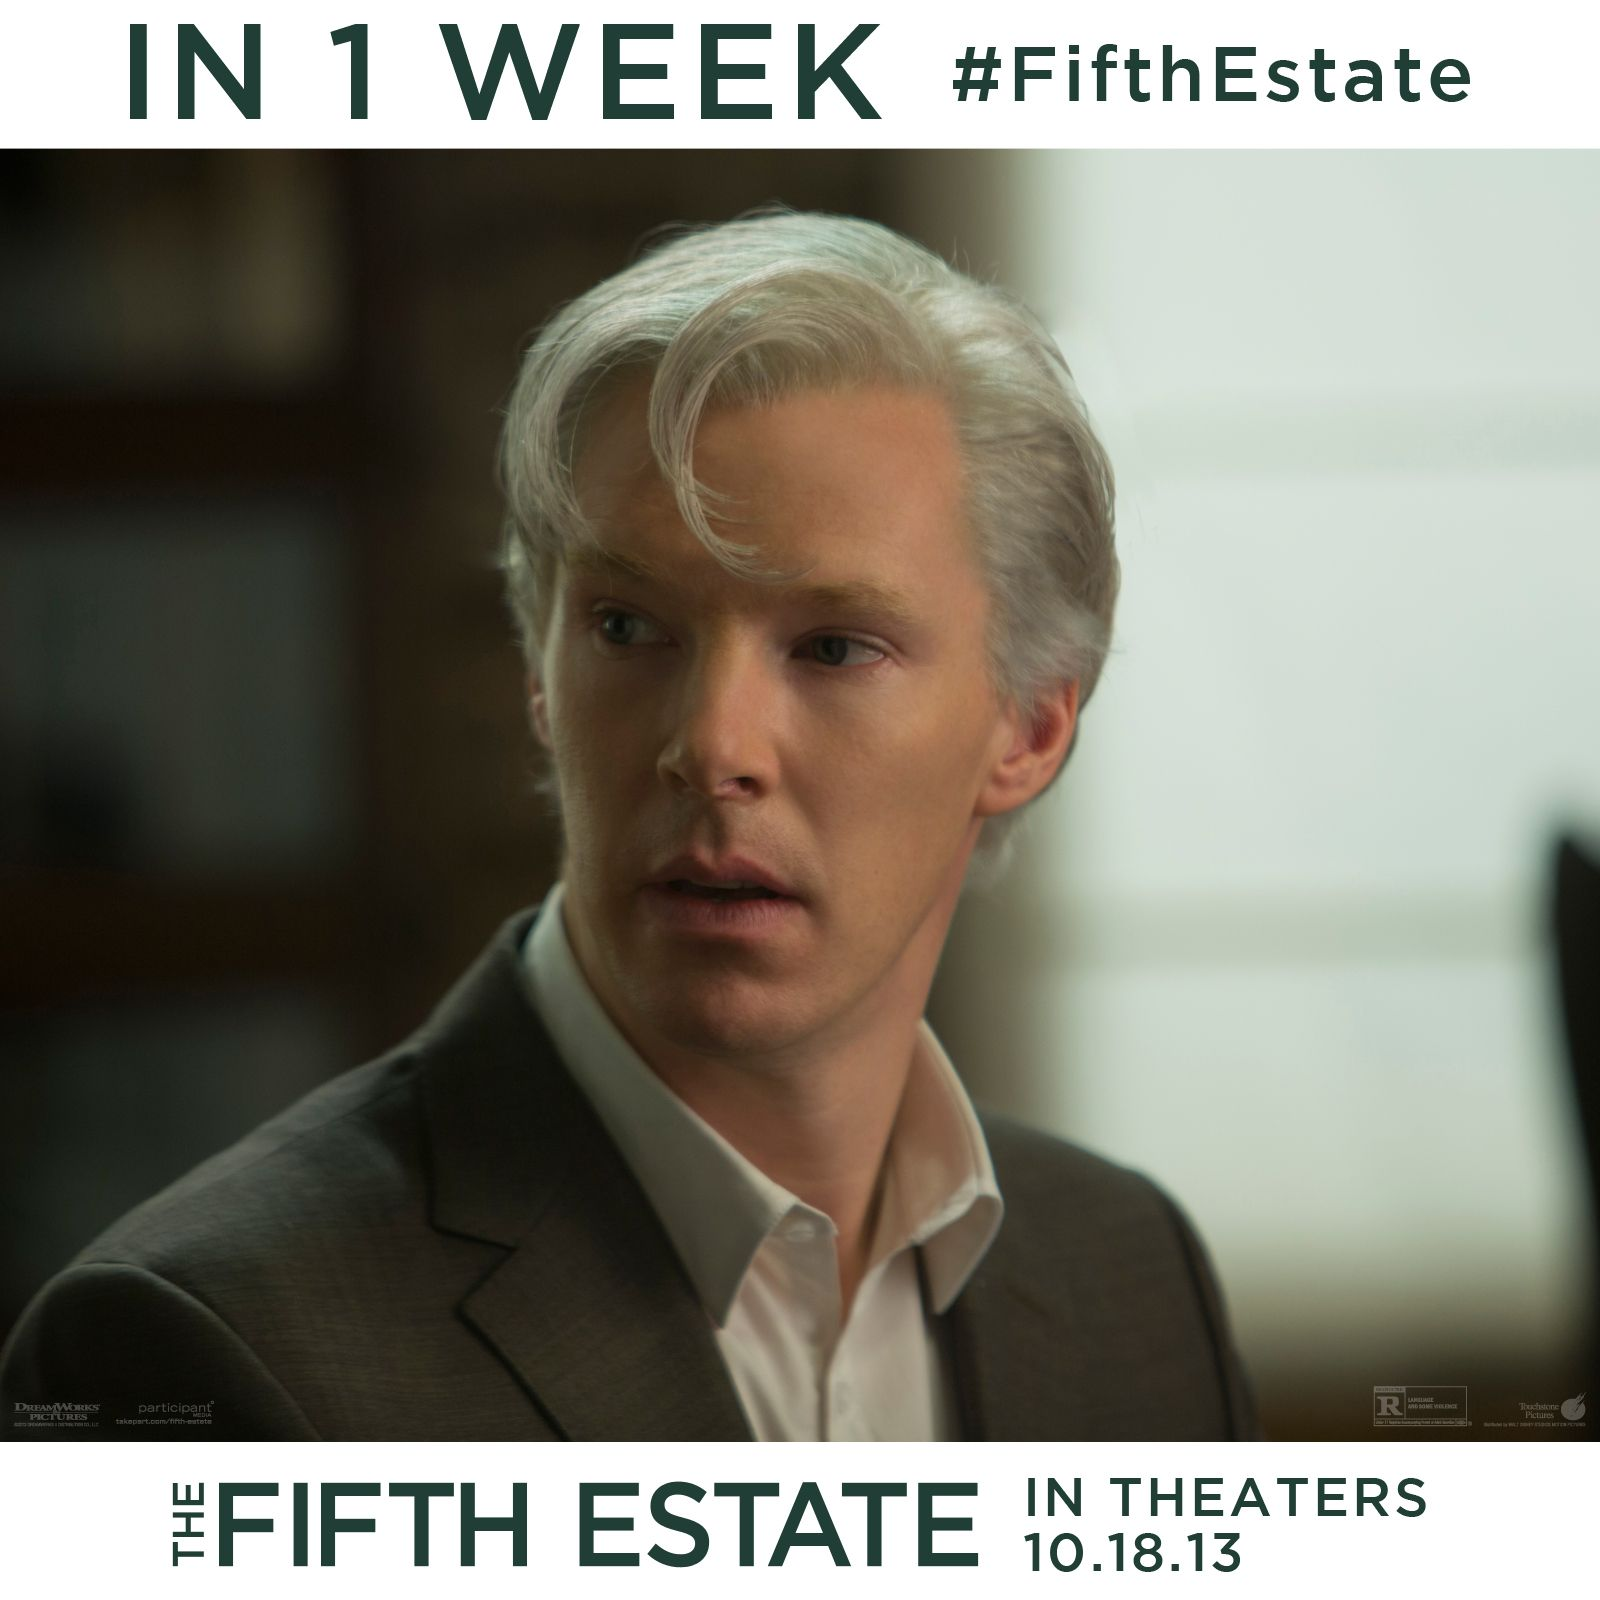 """If you want the truth, you have to seek it out for yourself."" In One Week see Benedict Cumberbatch as Julian Assange in The Fifth Estate. In theaters 10.18! #Cumberbatch #FifthEstate"